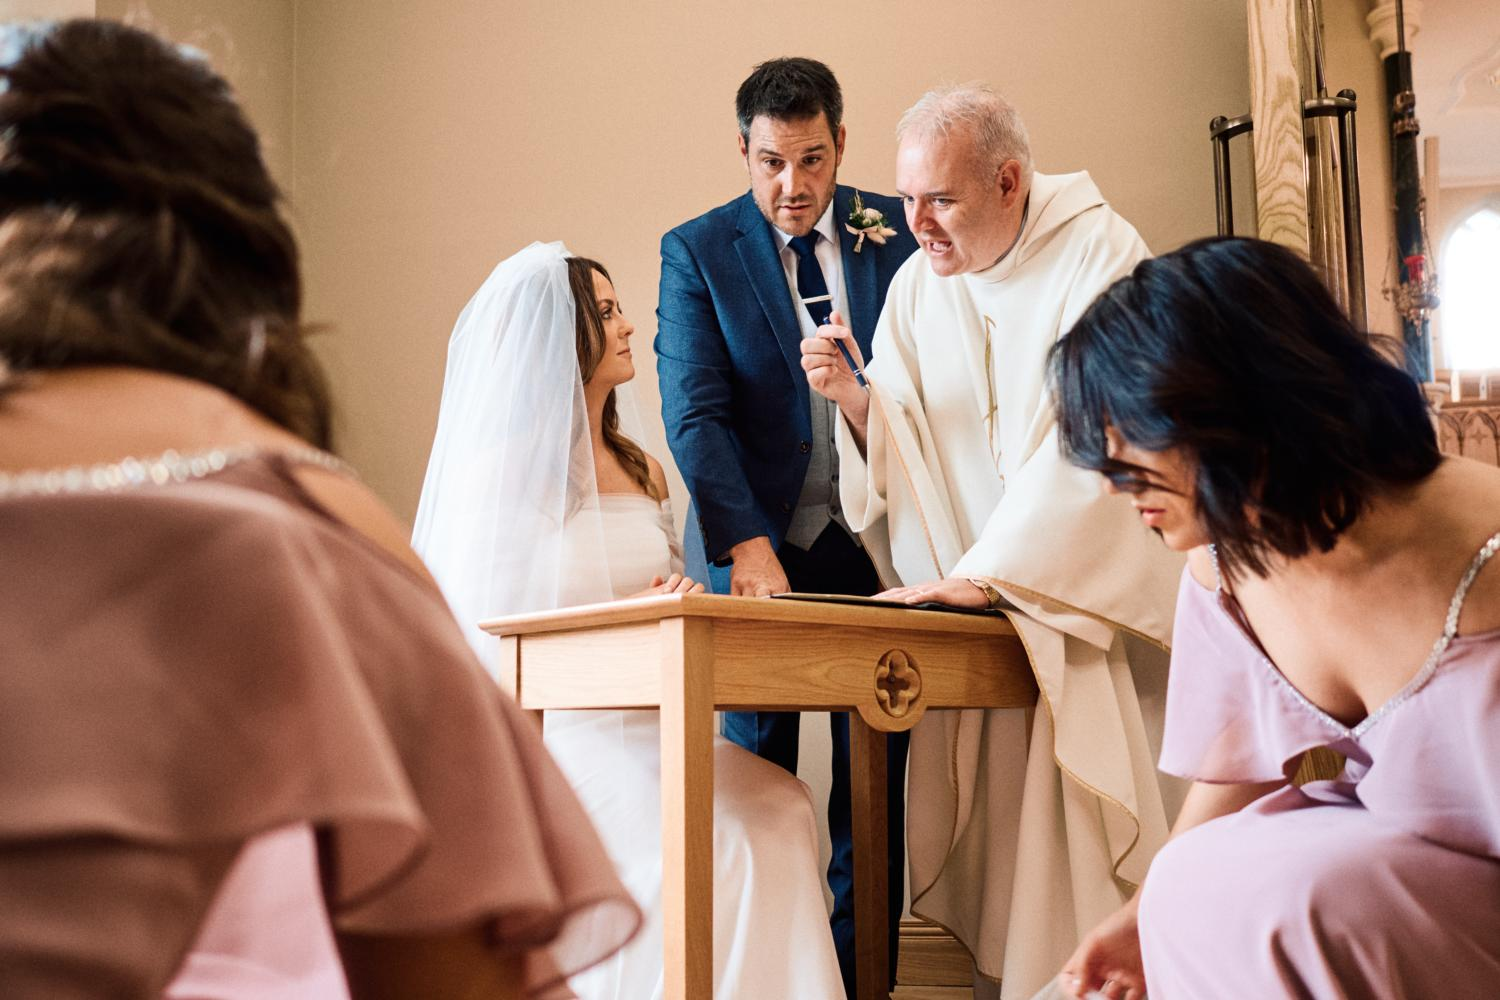 Bride and groom sign marriage certificate in the company of a priest